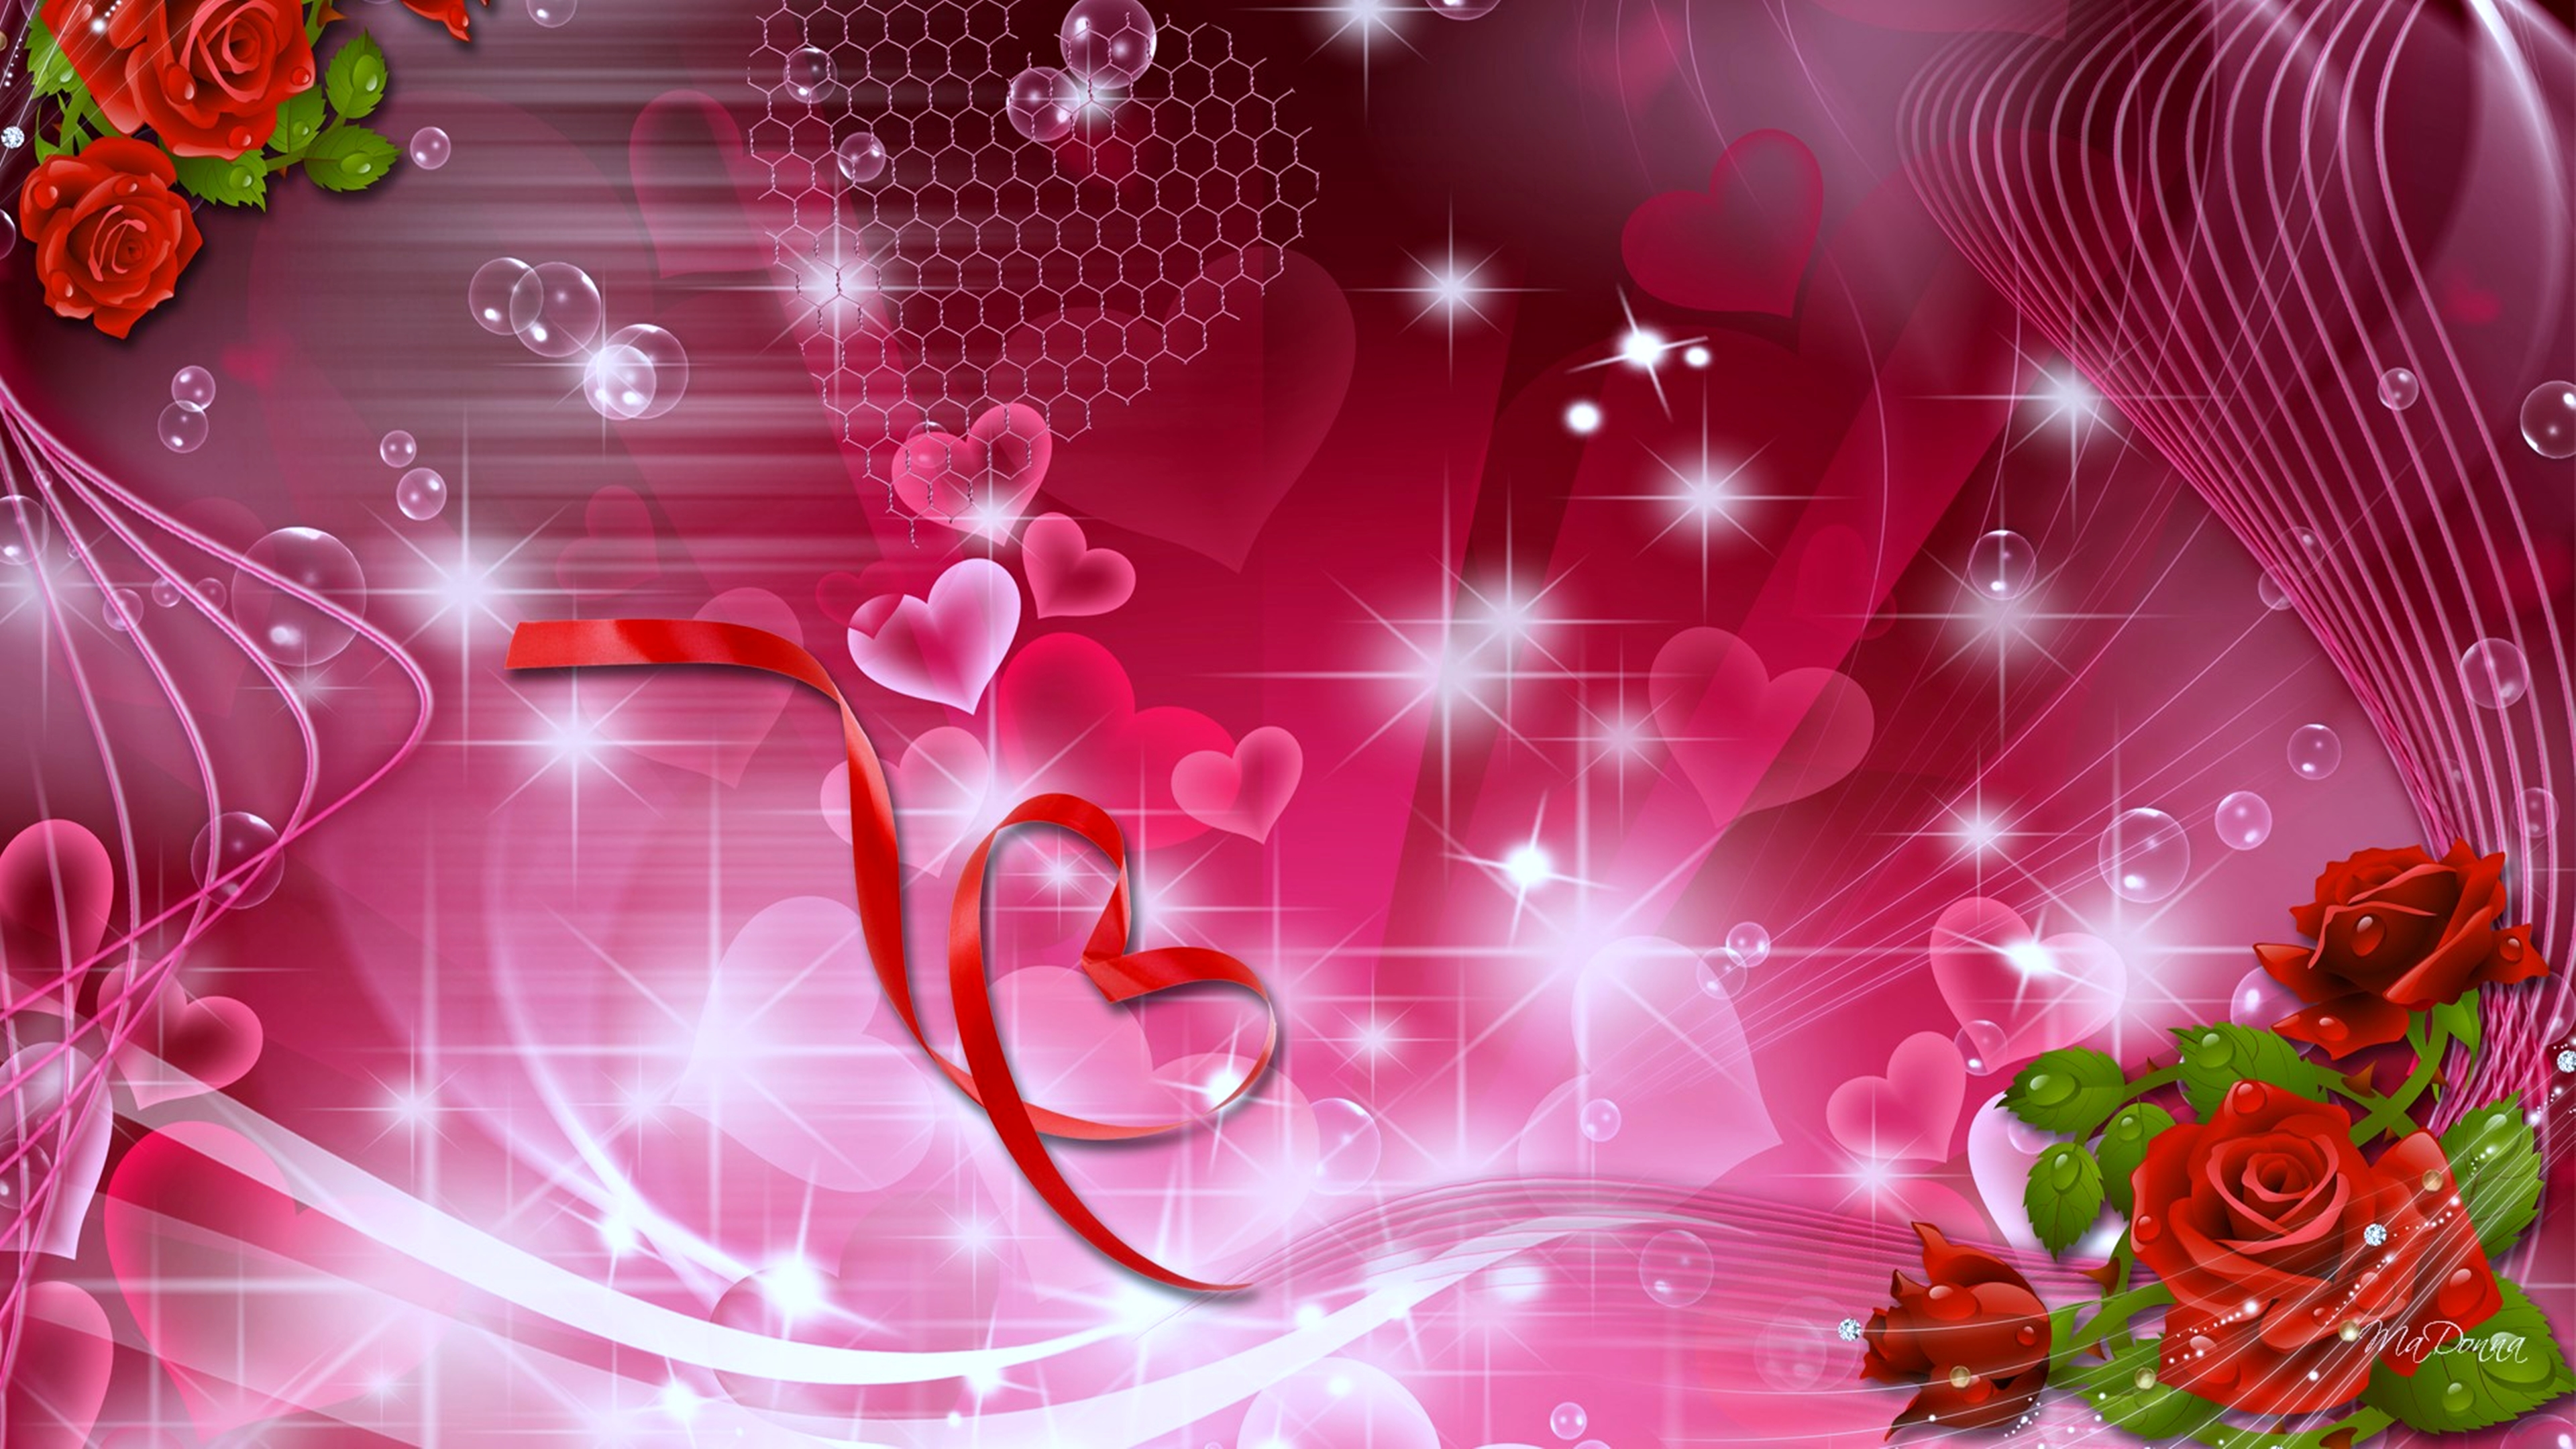 Wallpapers Fair Love Wallpaper Design For Desktop: Love Backgrounds, Pictures, Images